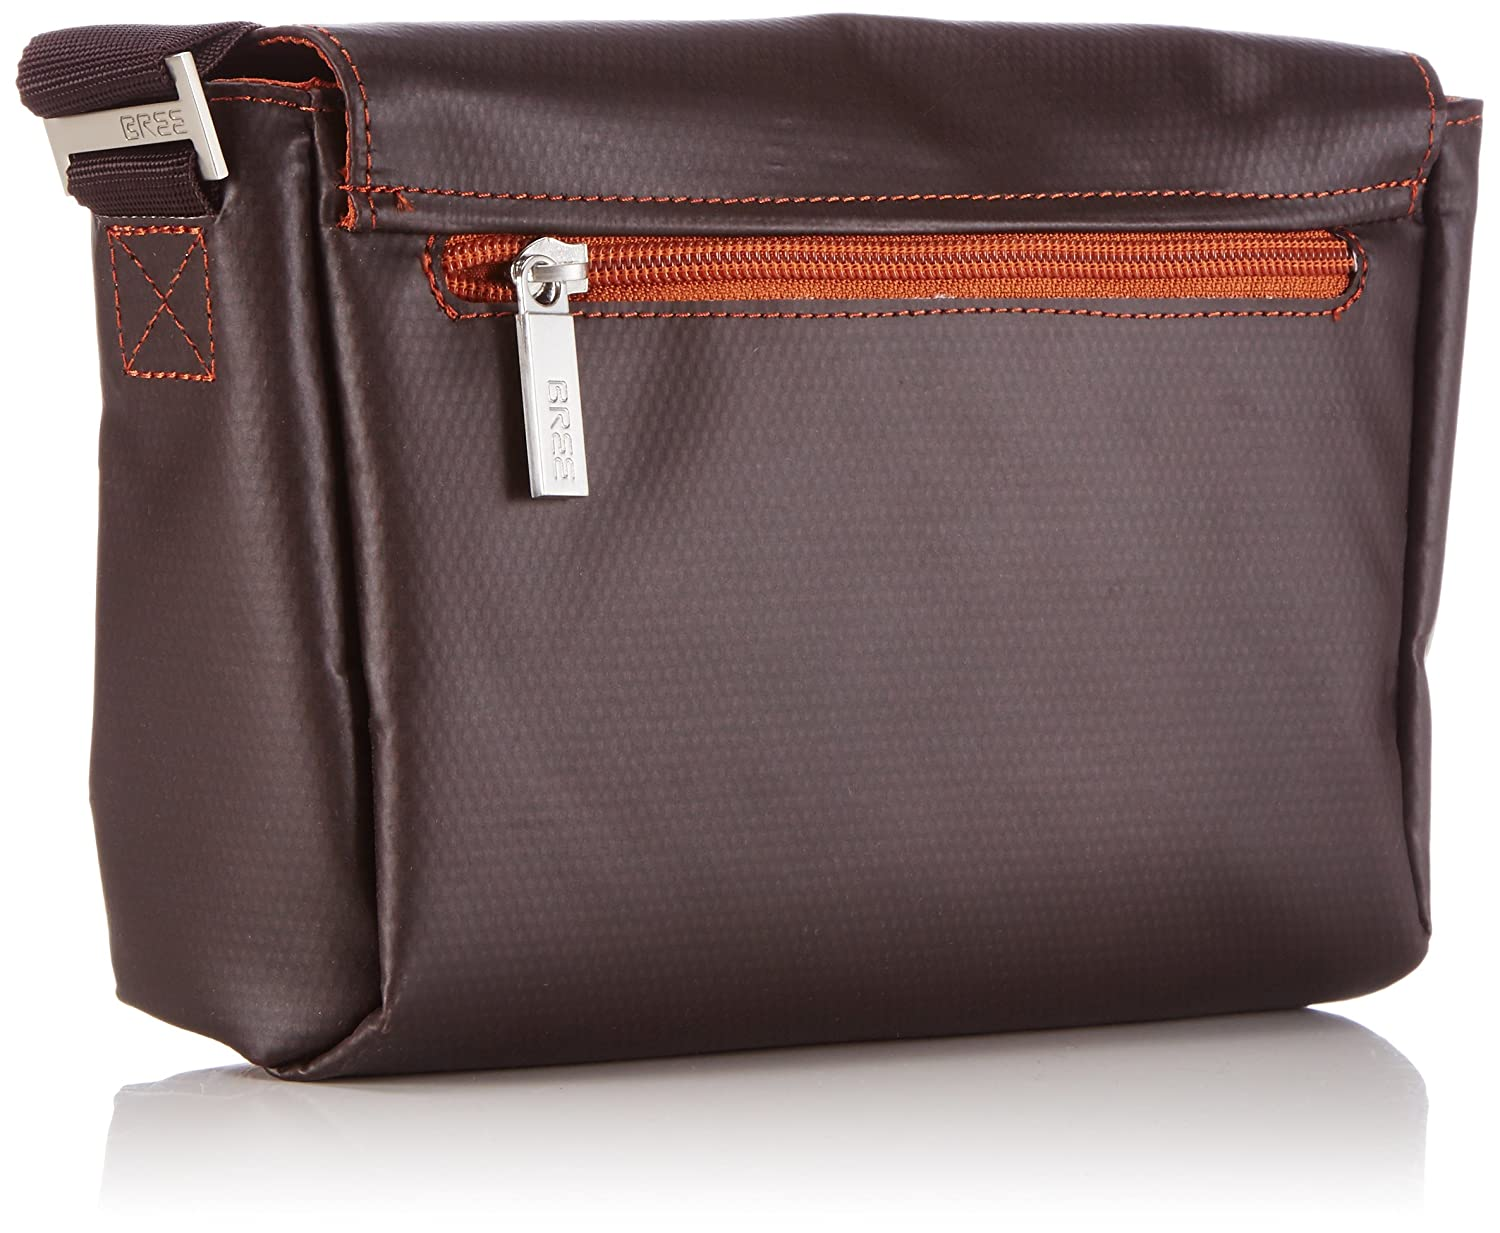 Bree Punch 701, Mocca, Cross Shoulder S, Unisex Adults Hobos and Shoulder Bag Bree